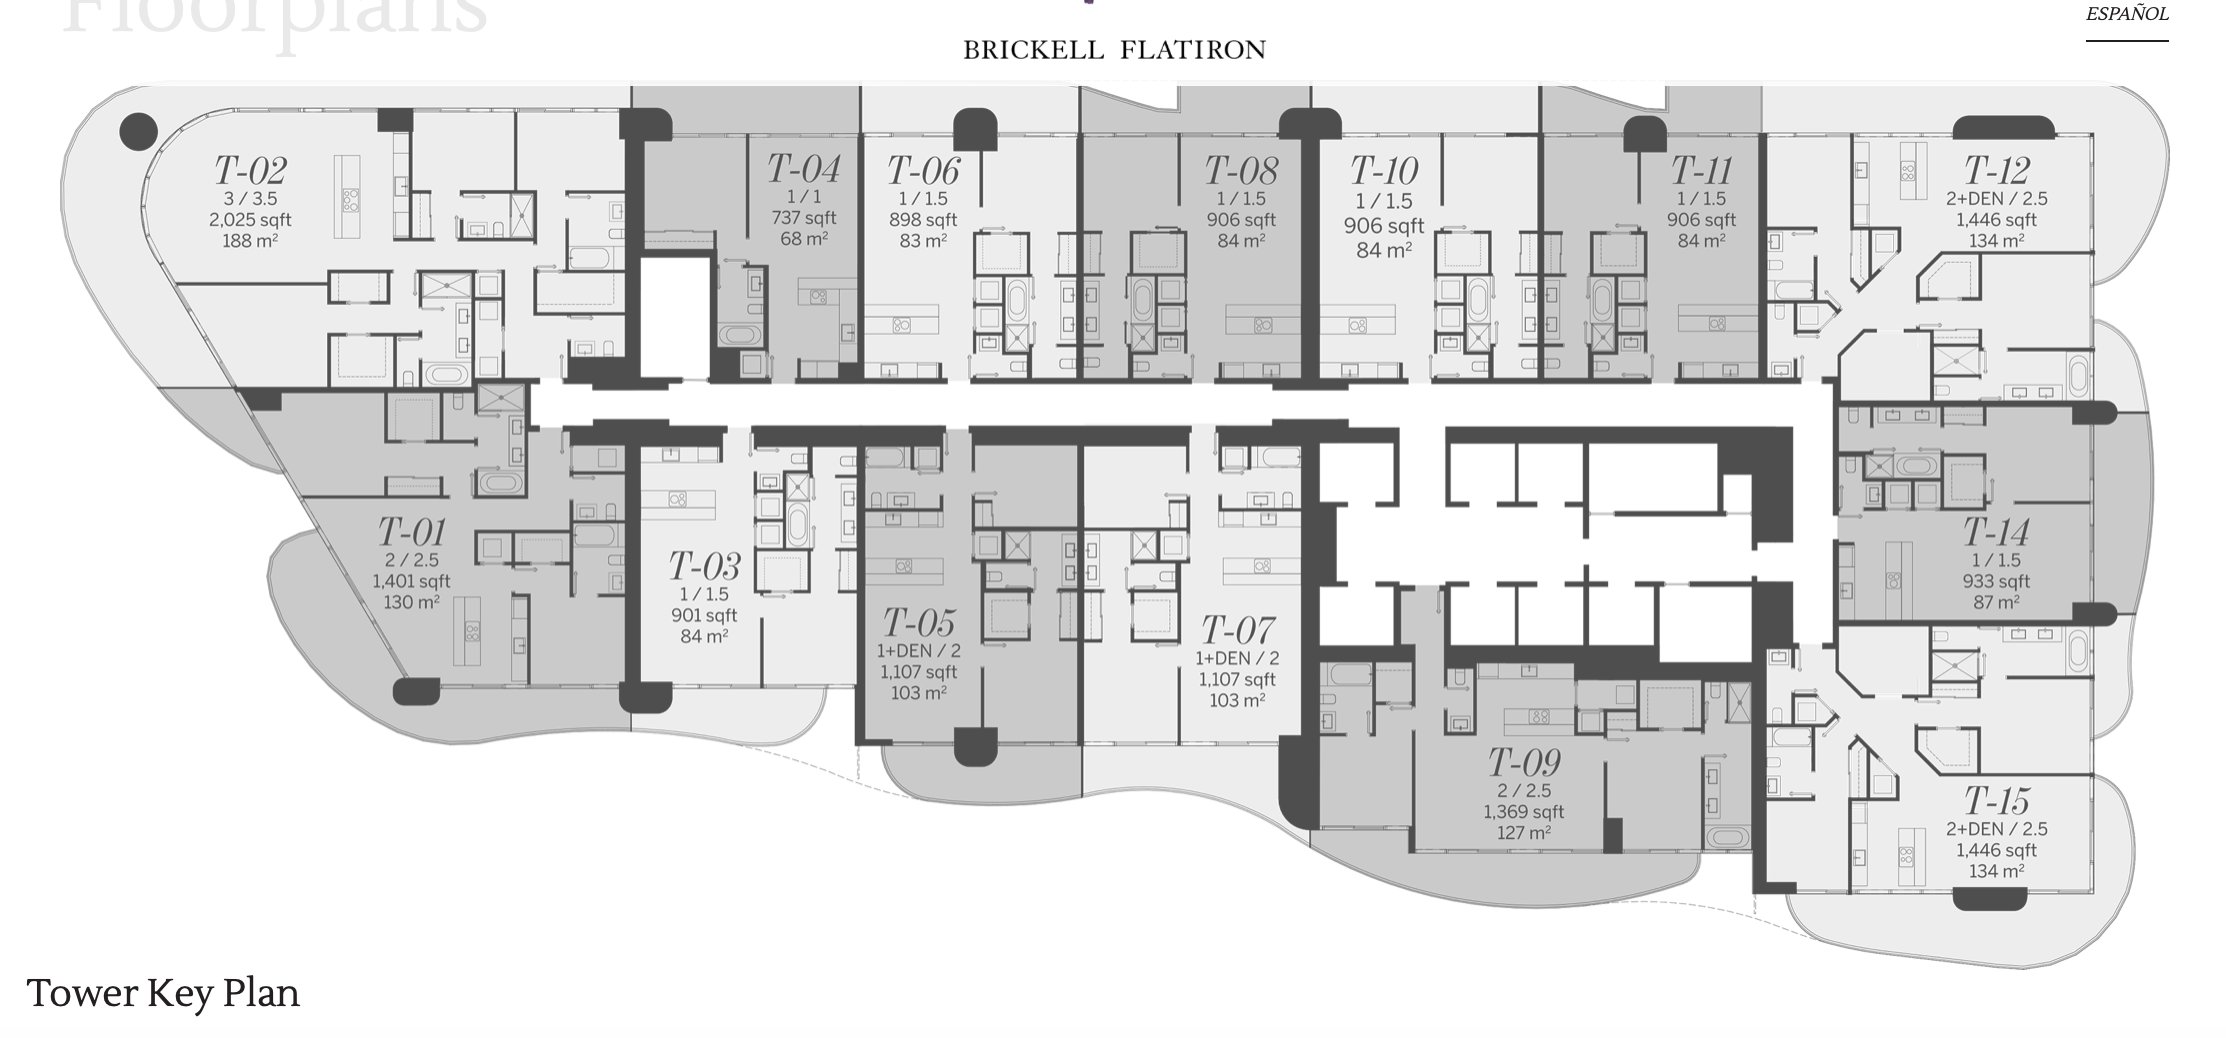 Tower Site Plan